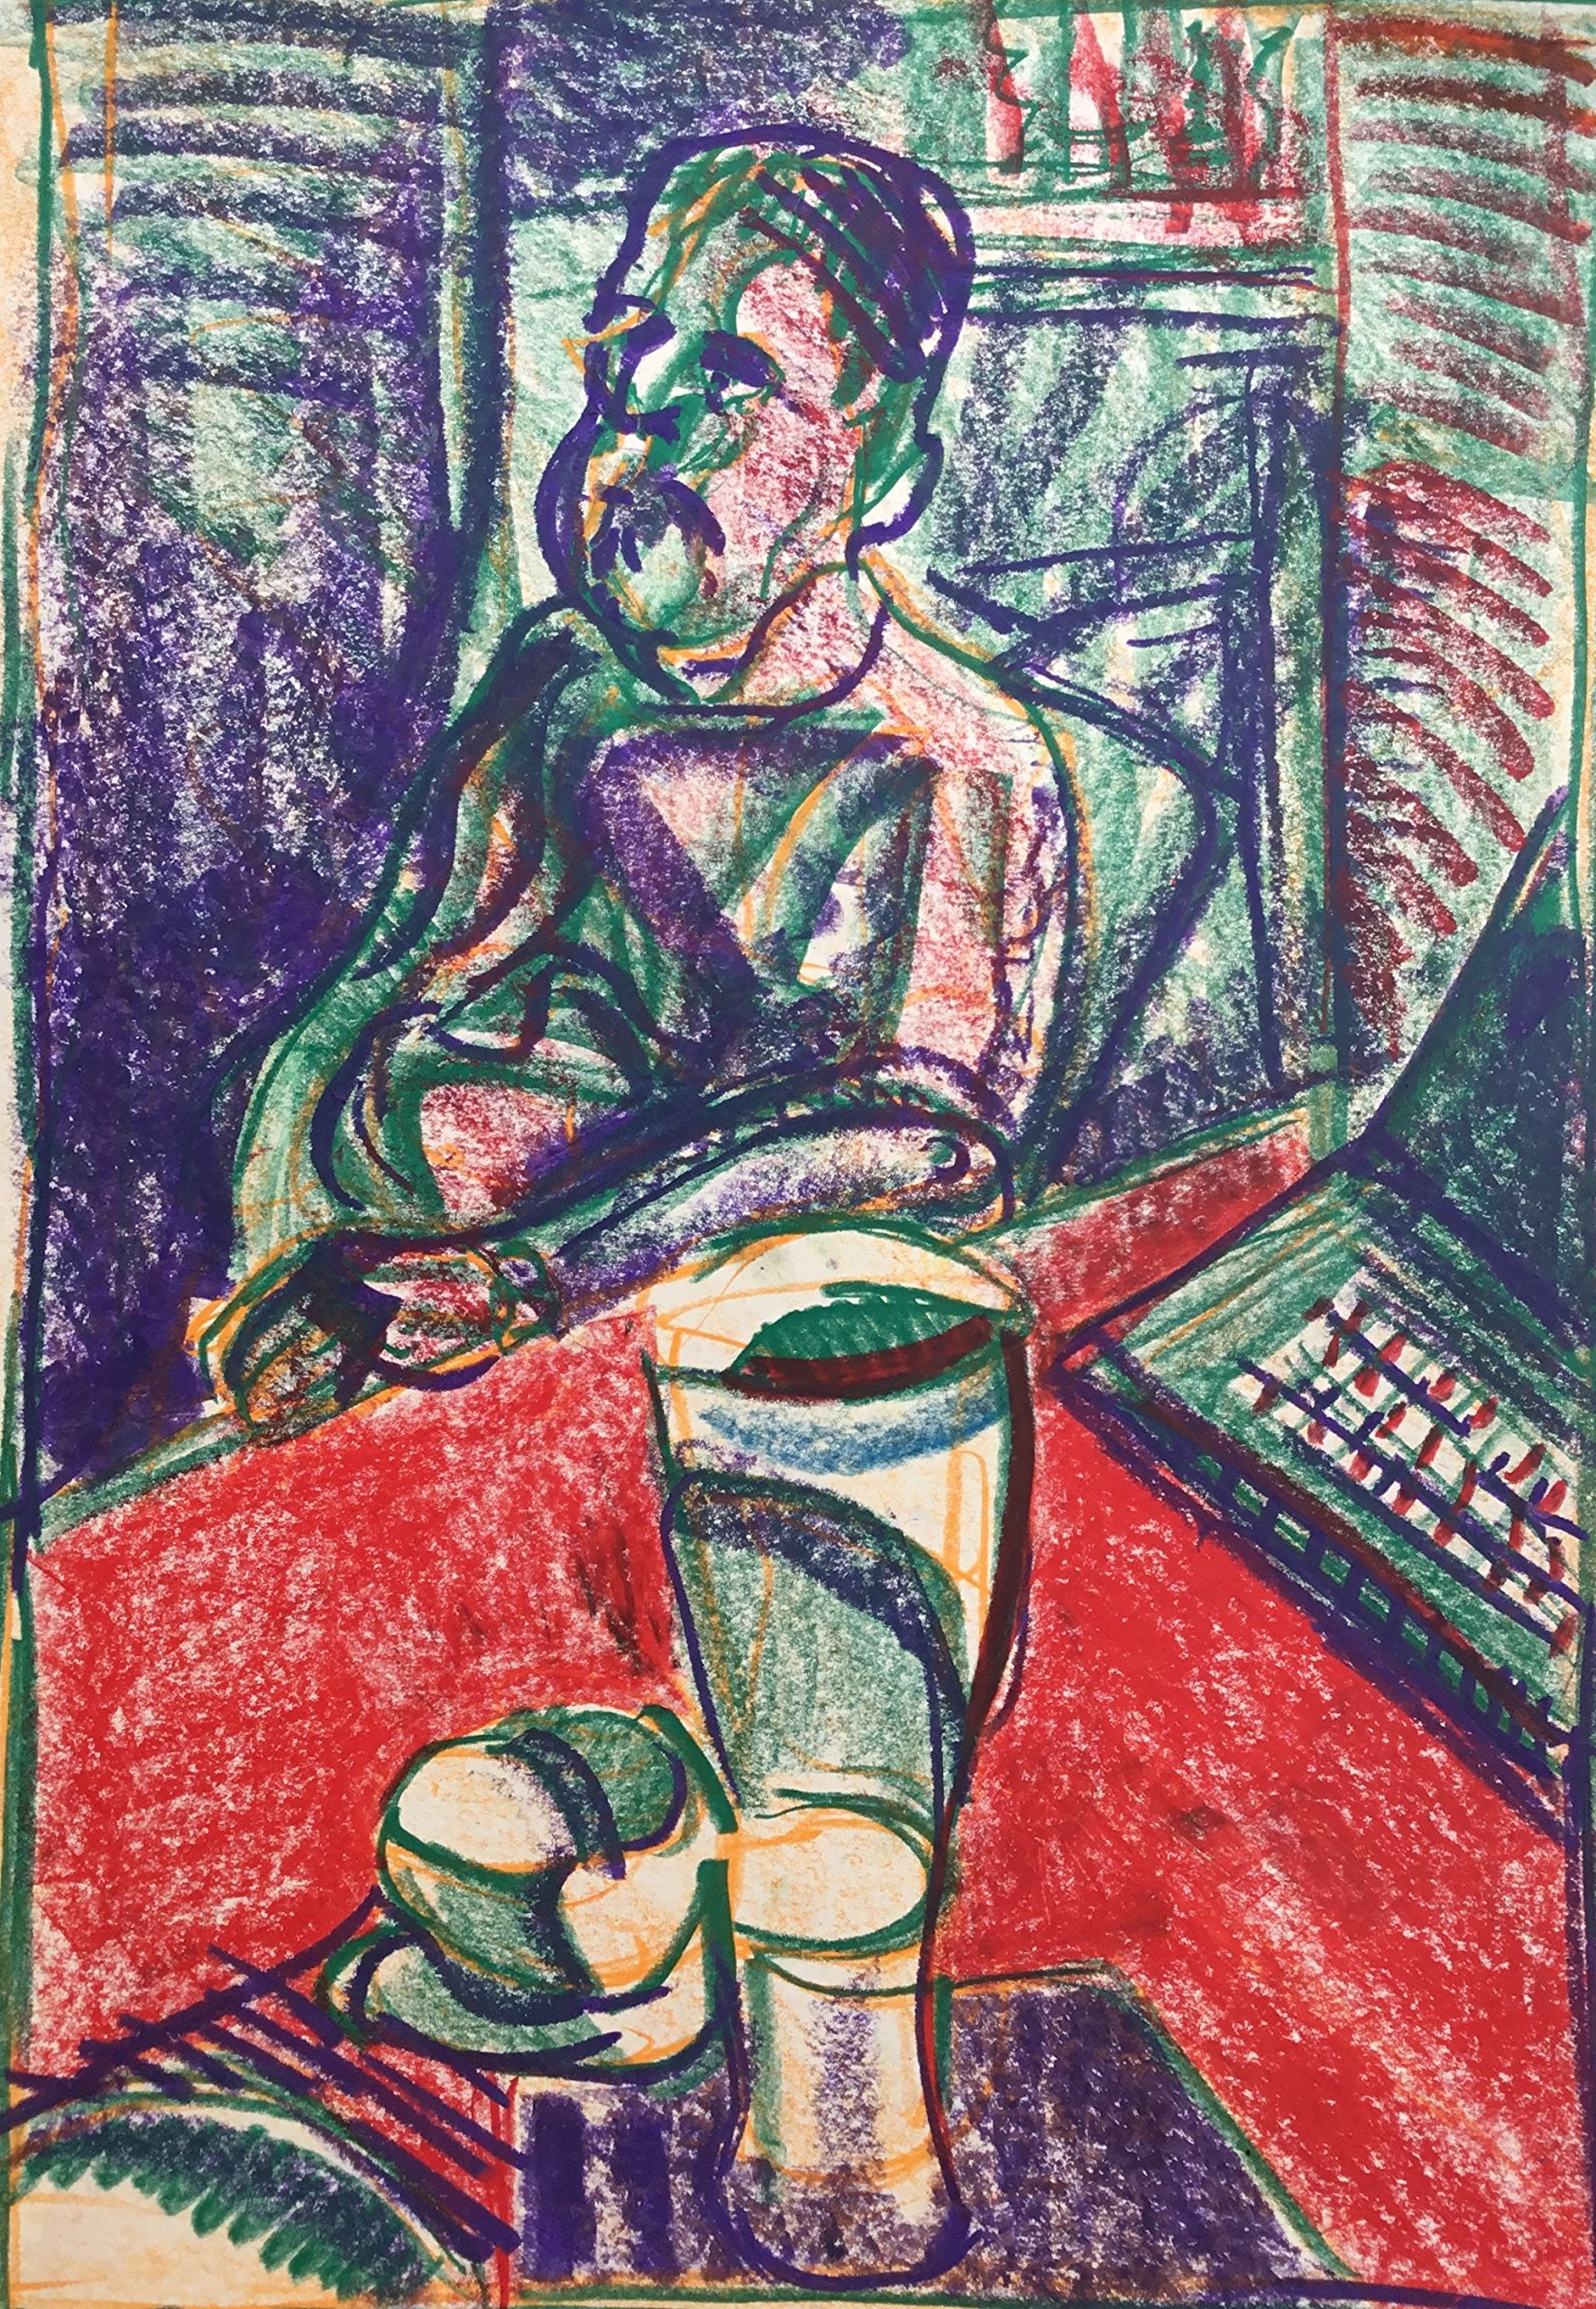 Man at a table by